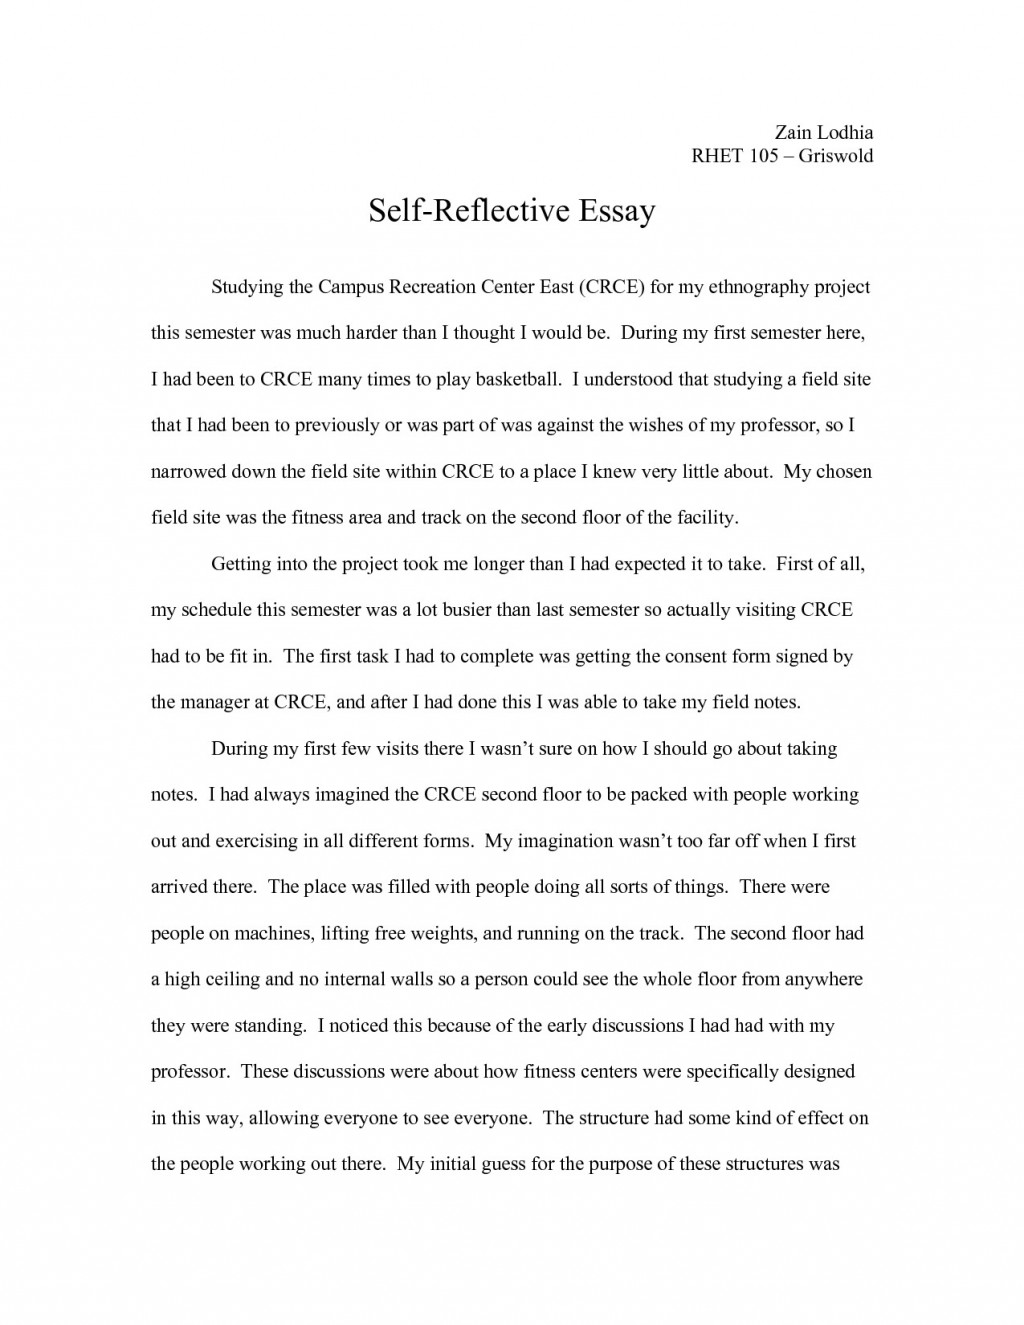 001 Essay Example Reflective Introduction Samples Of Essays How To Start Surprising A Do You An Write For Large